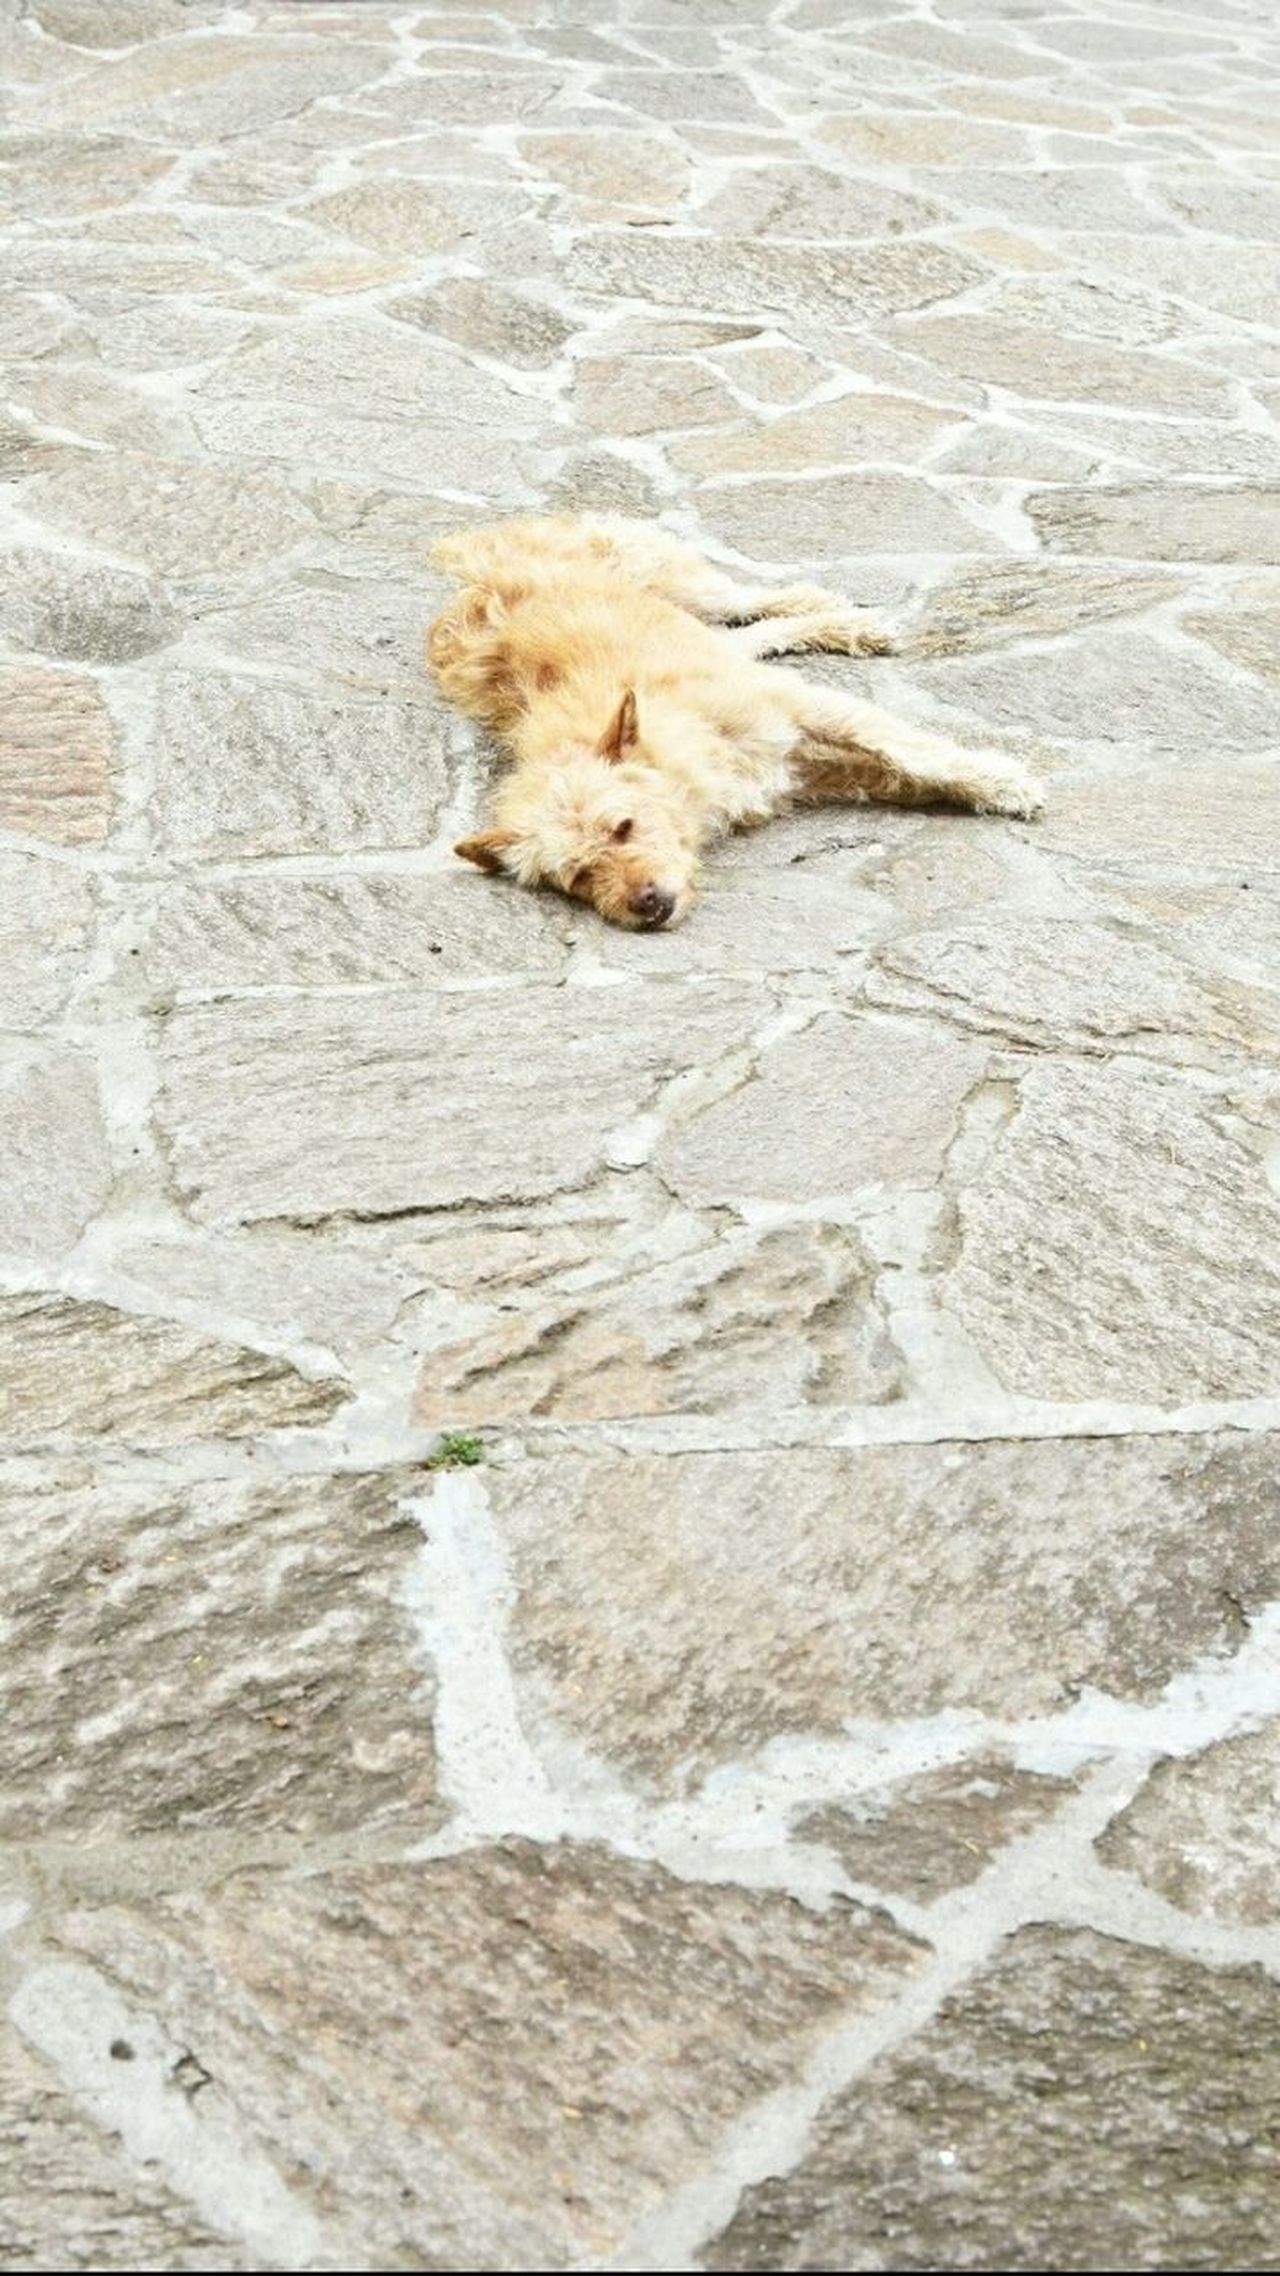 One Animal Animal Themes Dog High Angle View Outdoors Animals In The Wild Pets Domestic Animals